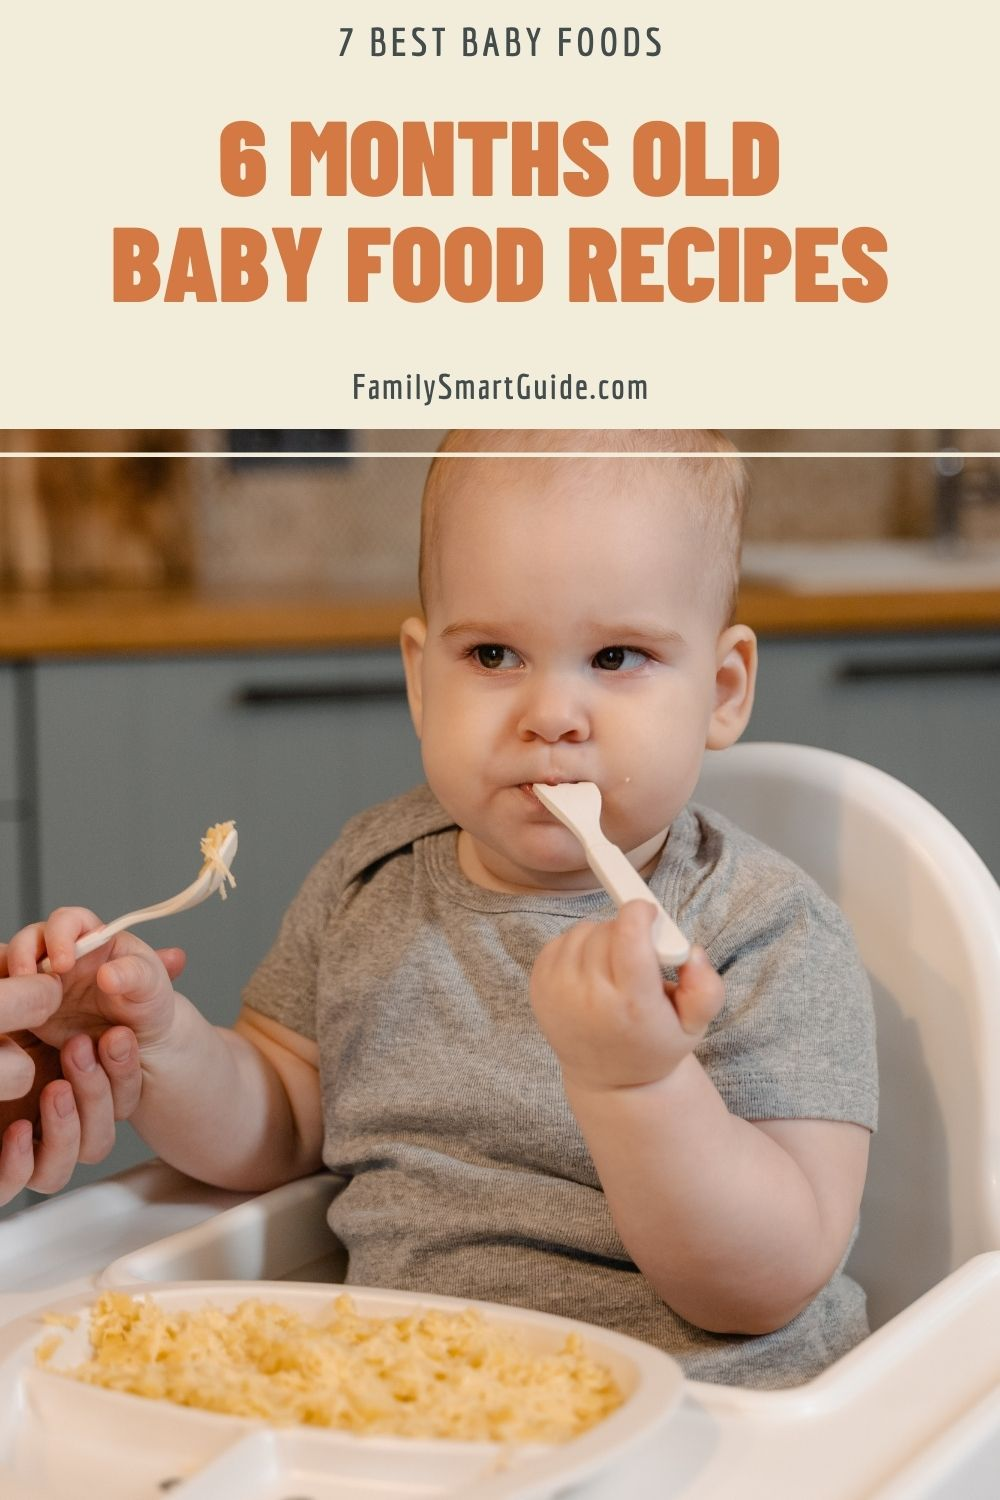 6 Months Old Baby Food Recipes 7 Best Baby Foods